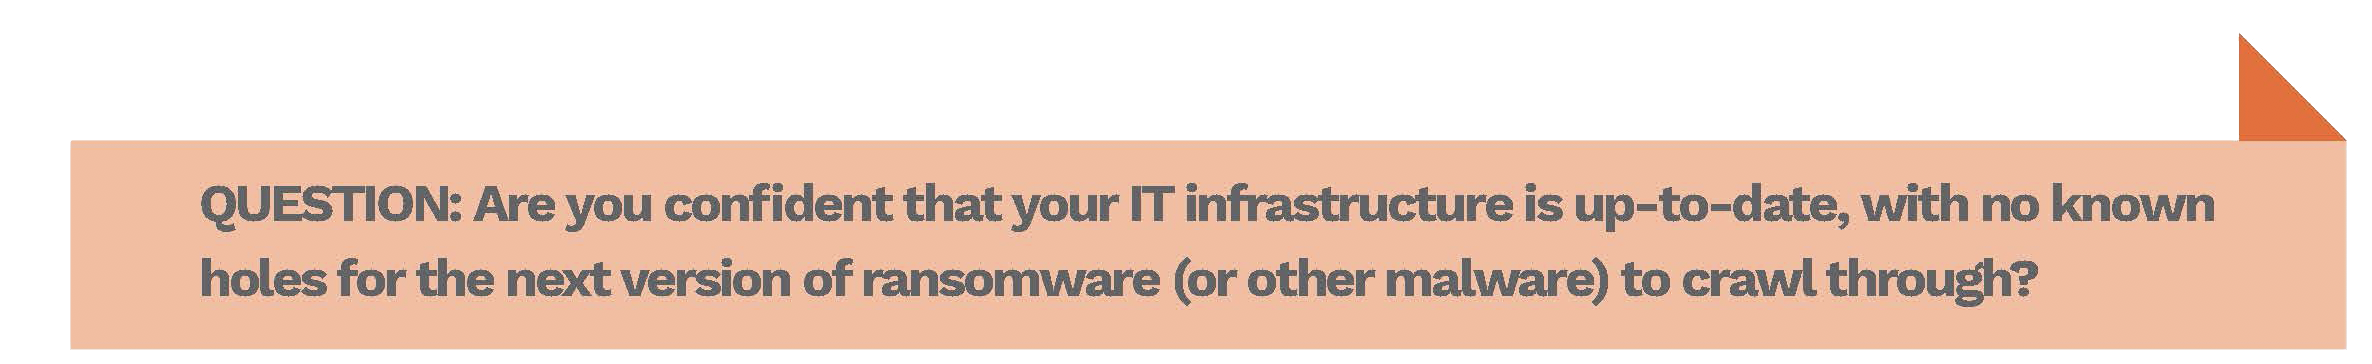 Are you confident your IT infrastructure is up-to-date?